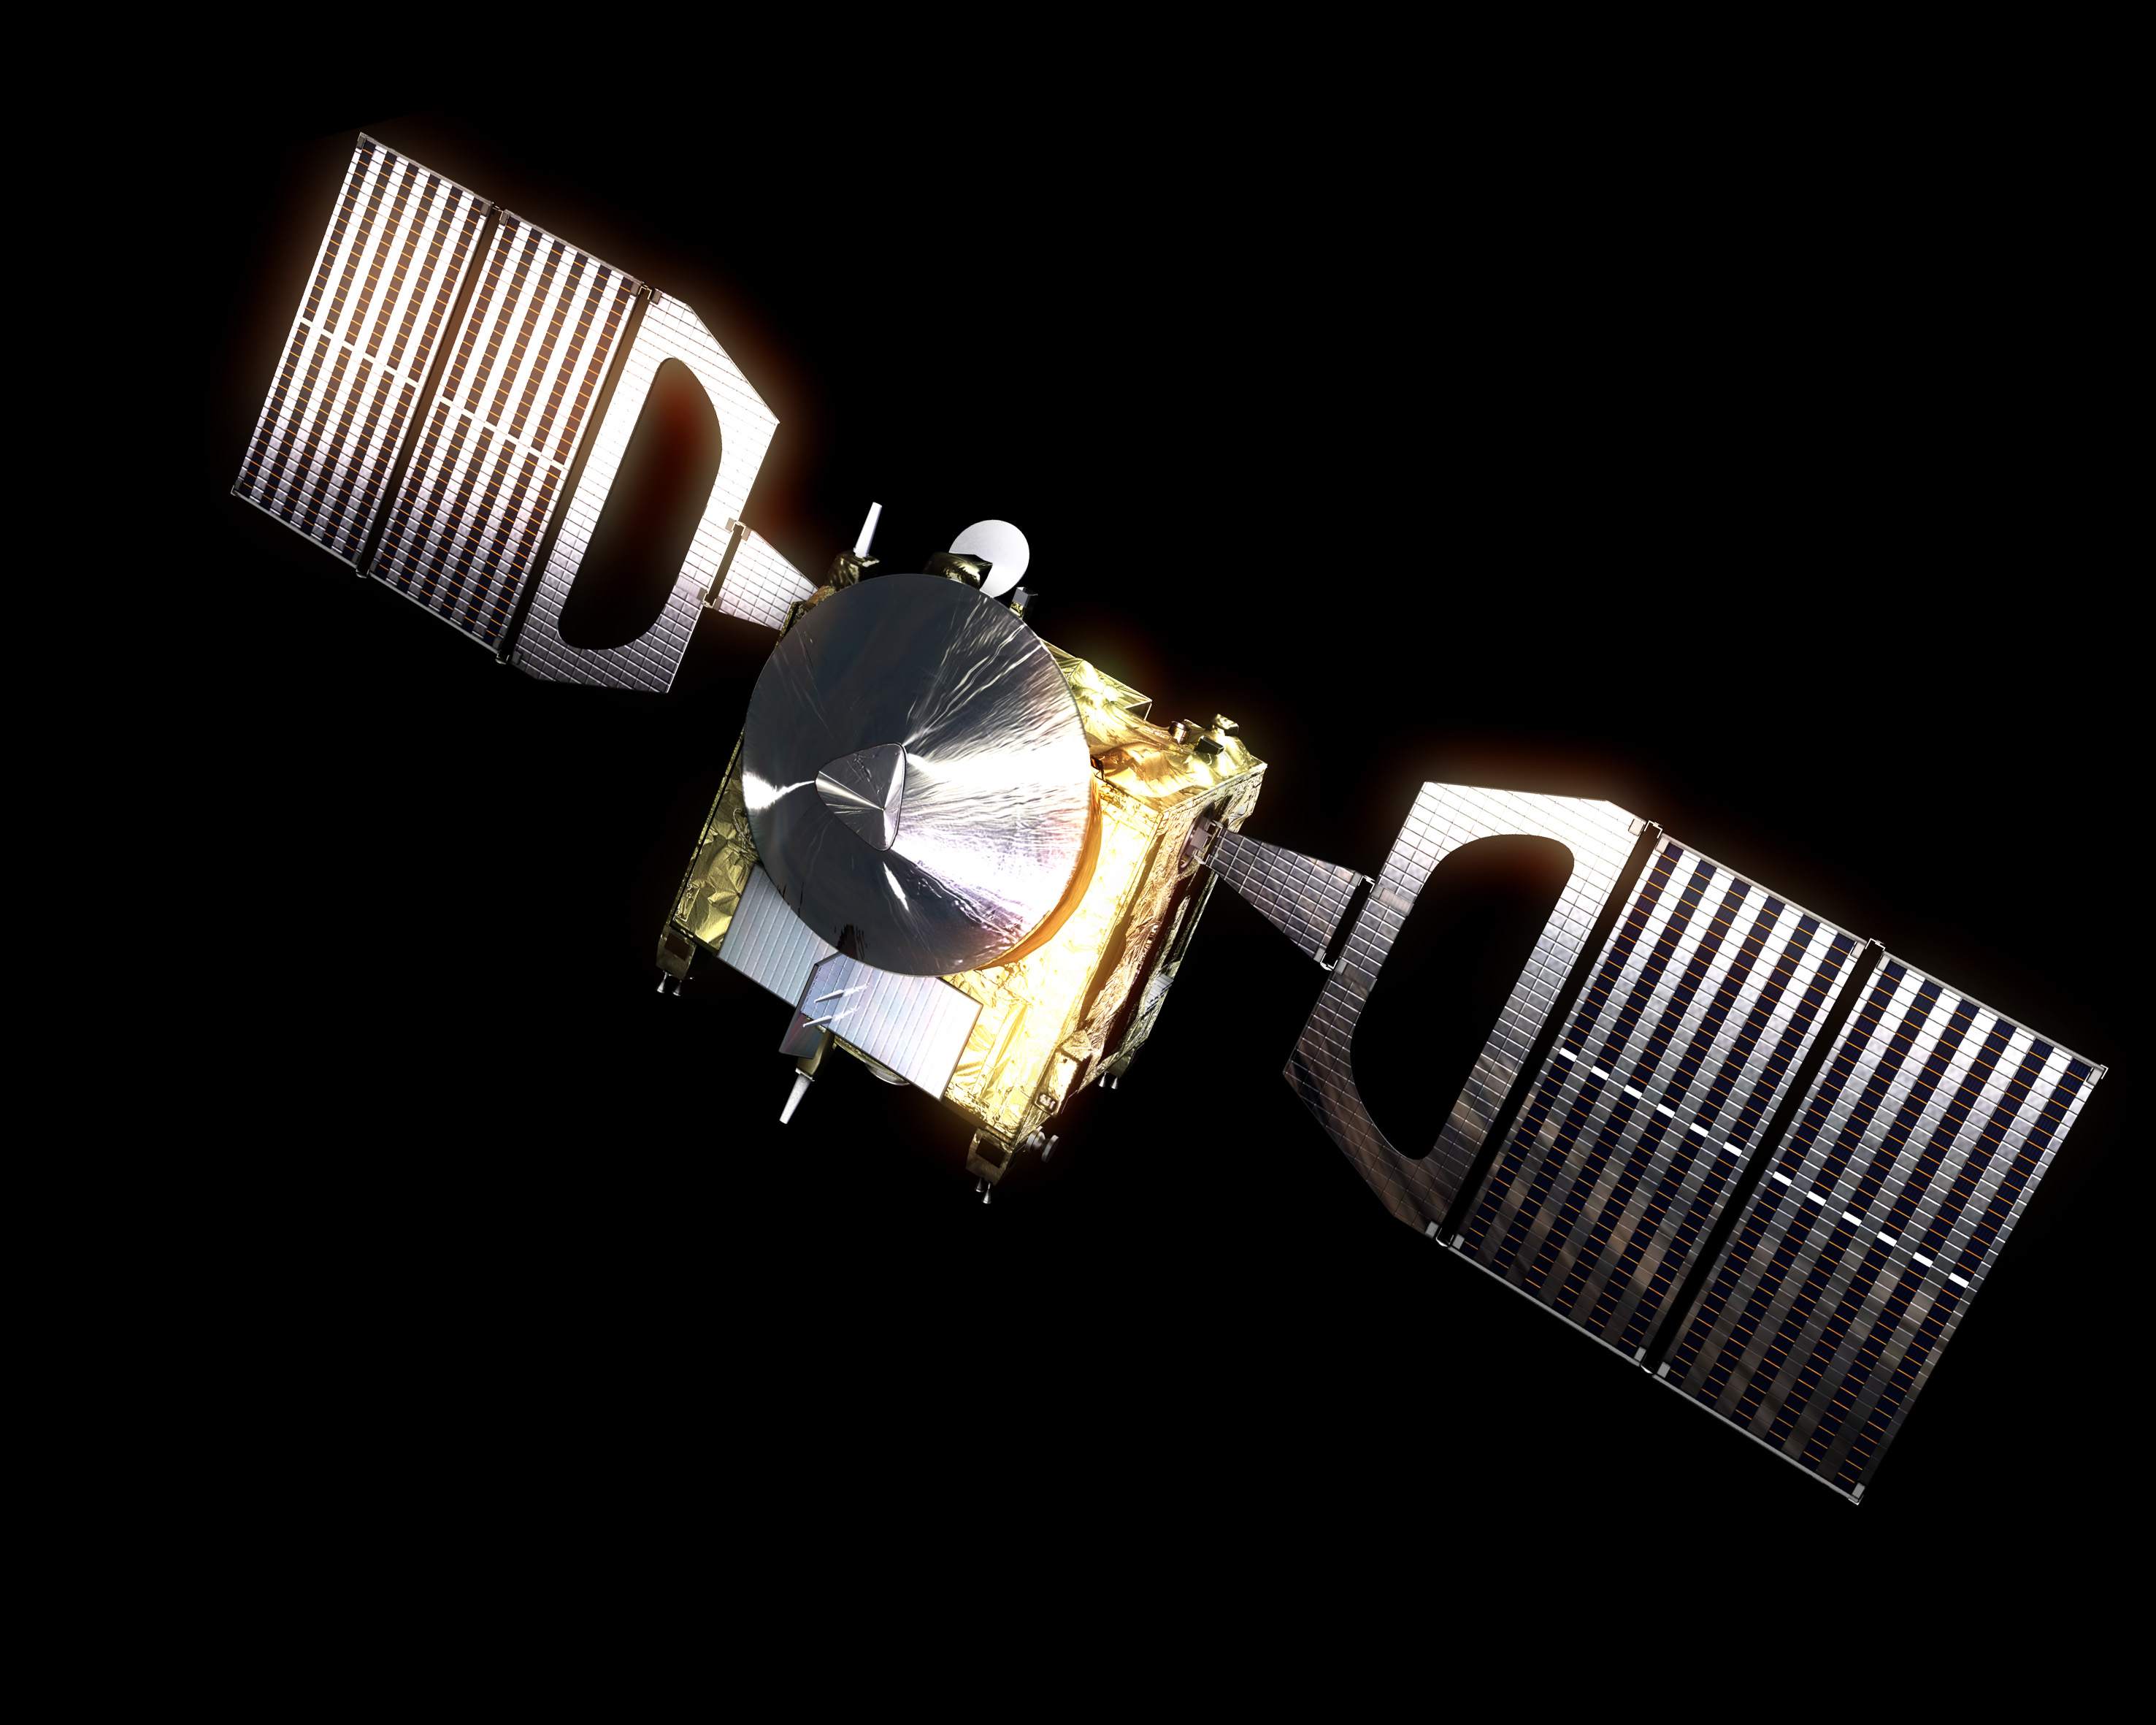 esa venus express spacecraft -#main